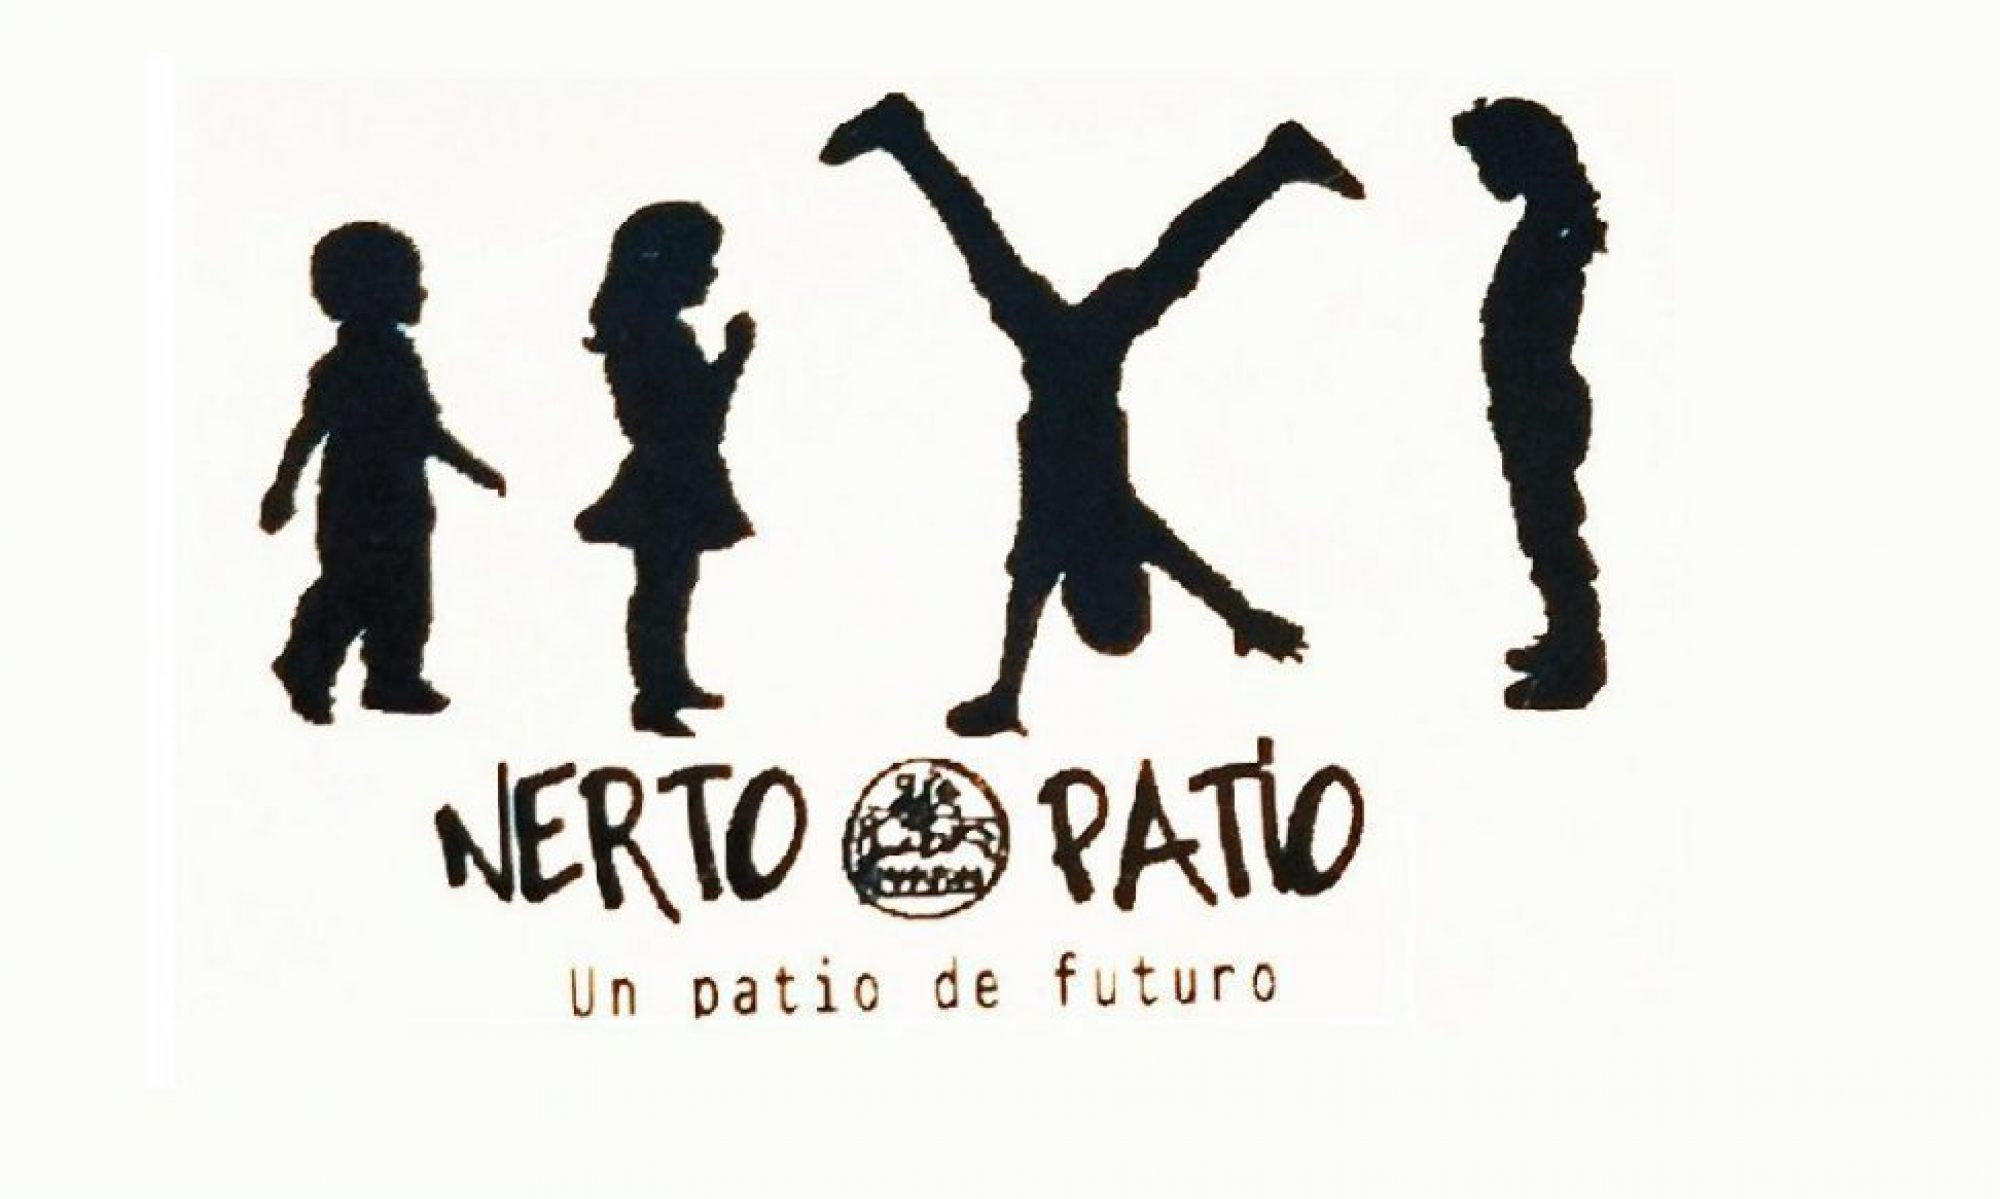 NERTOPATIO